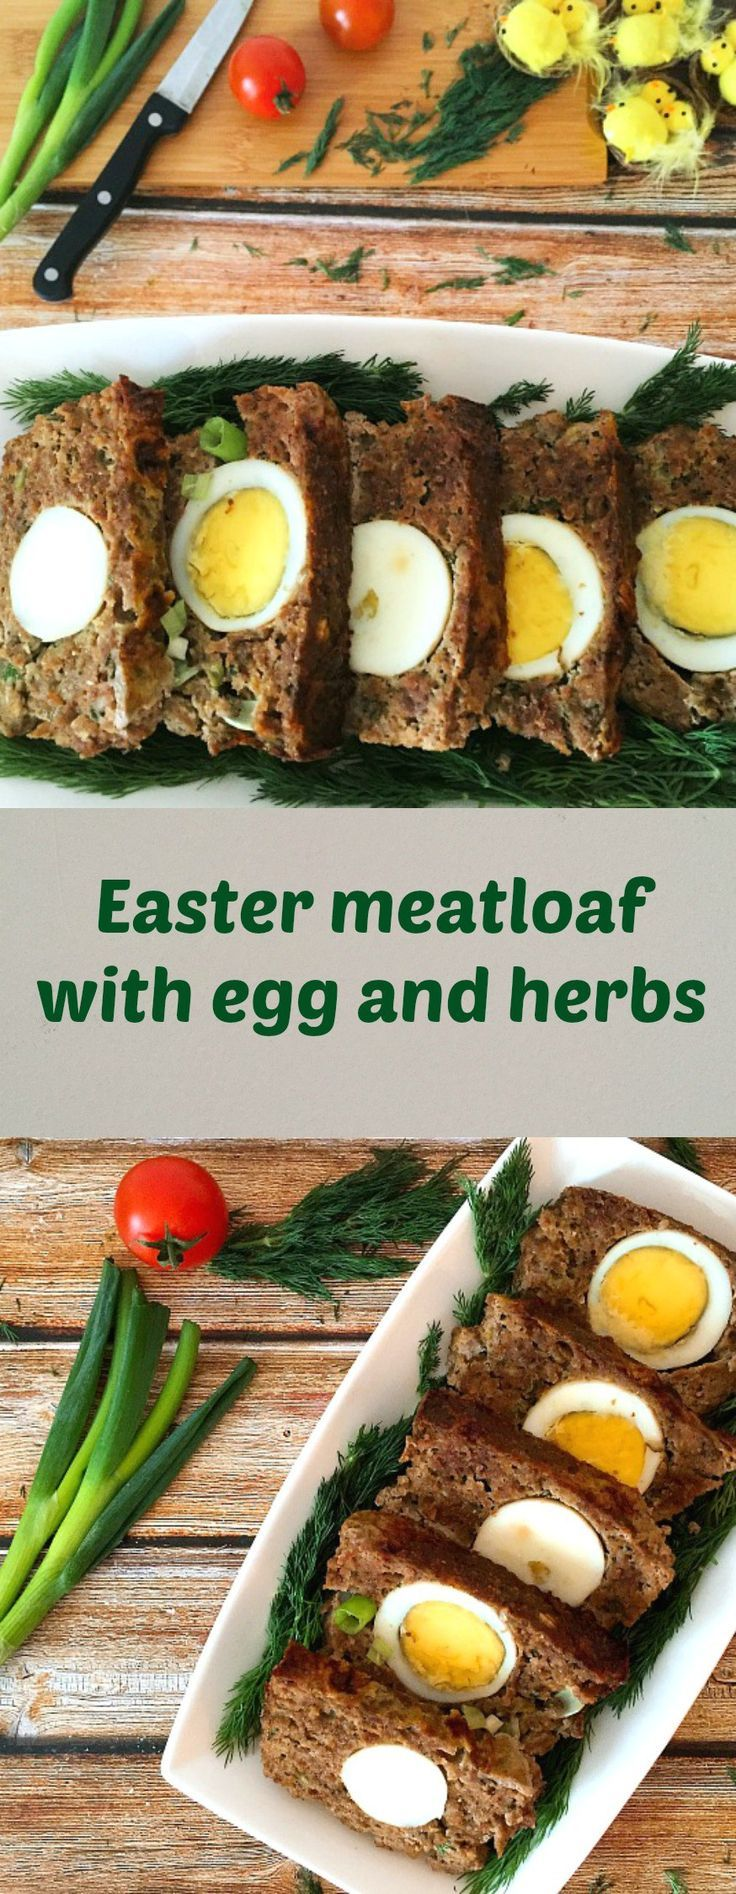 Easter meatloaf with egg and herbs, a delicious starter recipe for the Easter menu.